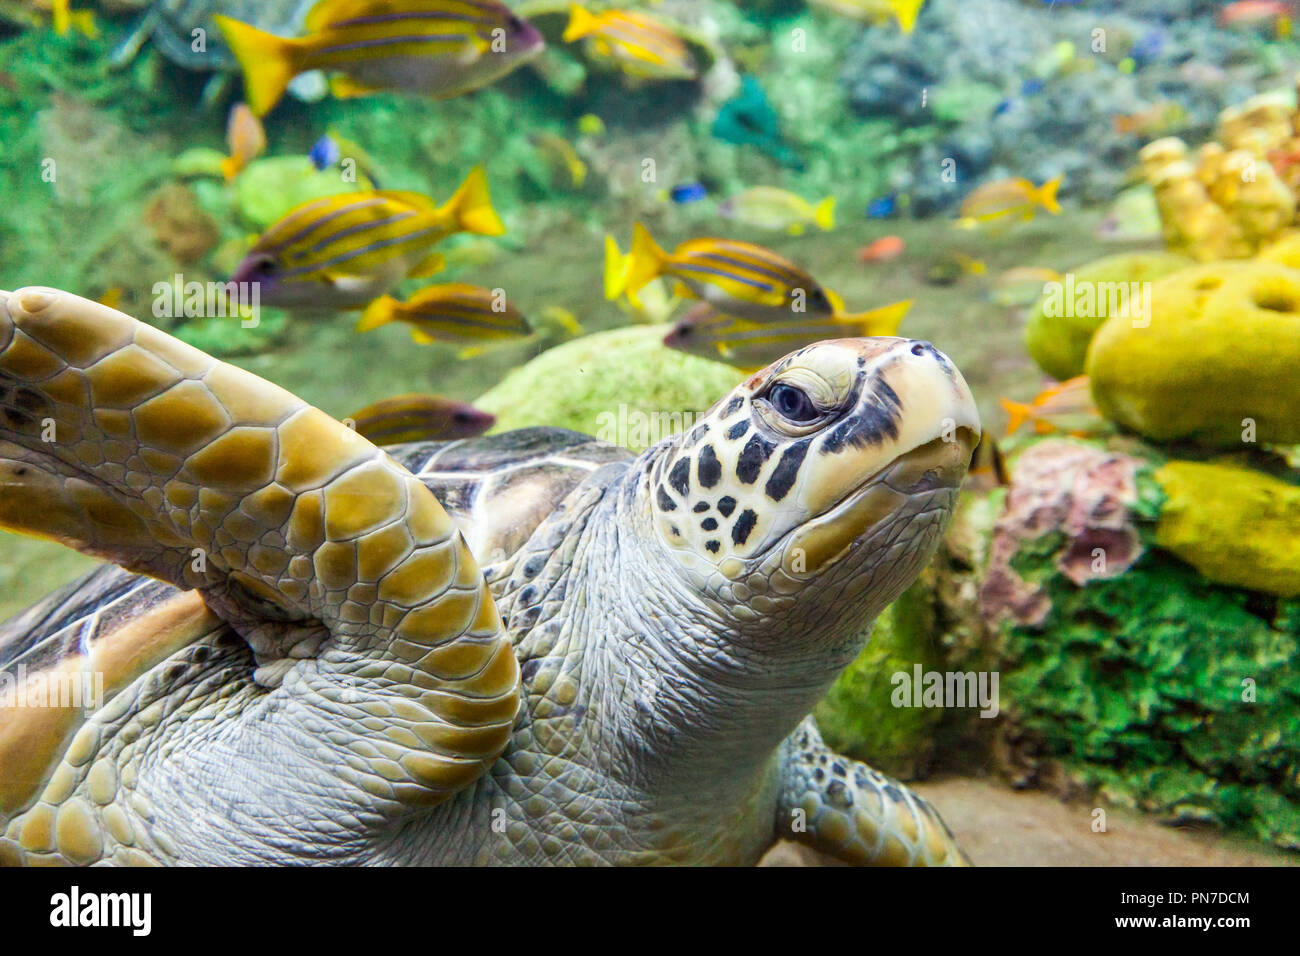 Closeup of sea turtle with fish underwater - Stock Image